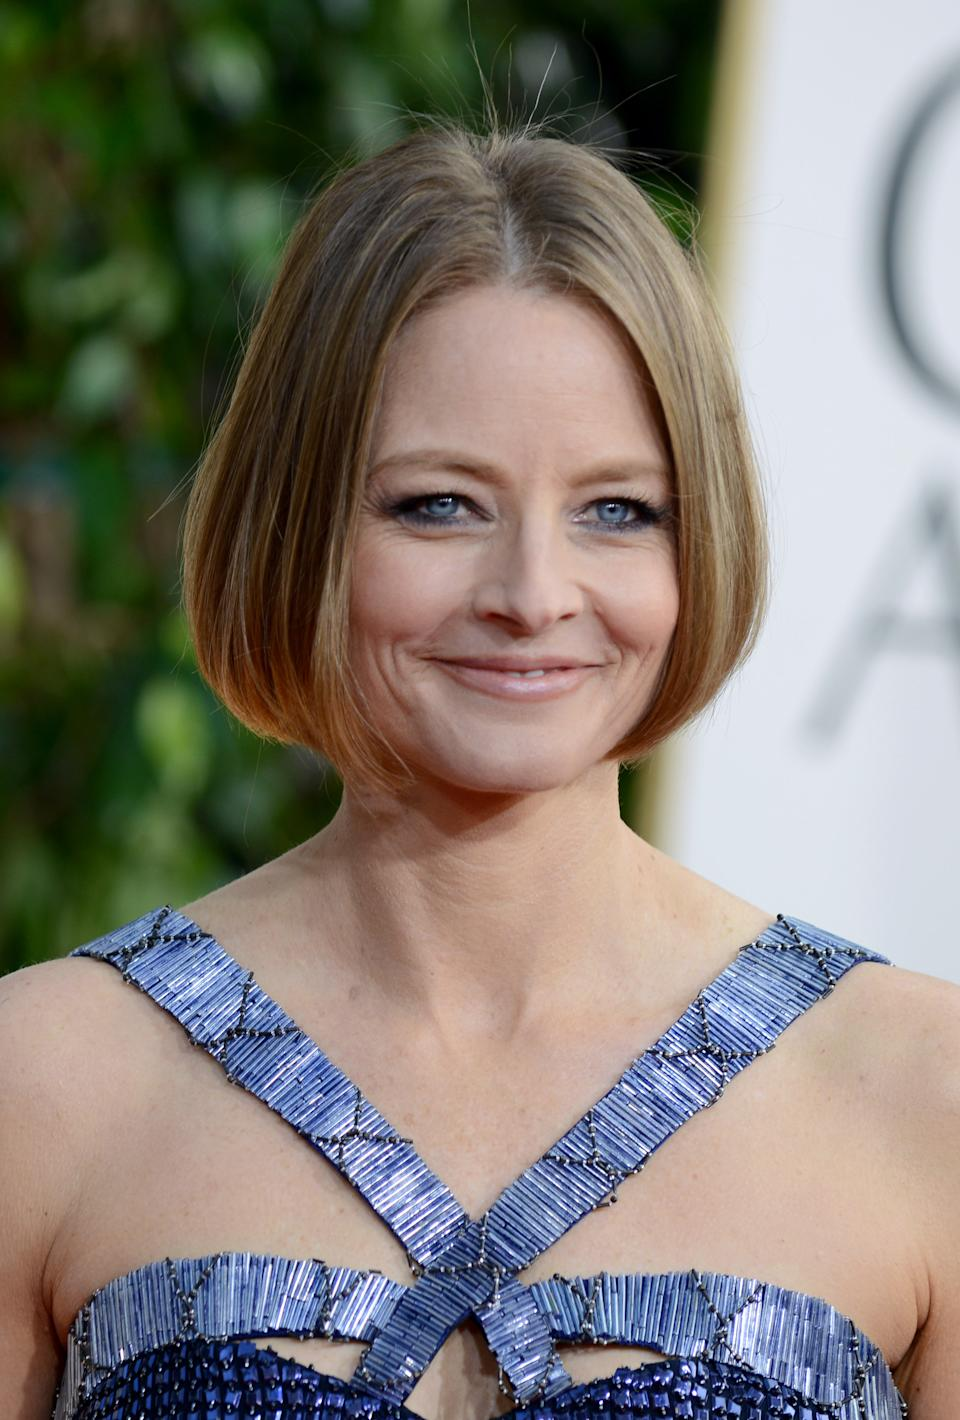 Actress Jodie Foster arrives at the 70th Annual Golden Globe Awards at the Beverly Hilton Hotel on Sunday Jan. 13, 2013, in Beverly Hills, Calif. (Photo by Jordan Strauss/Invision/AP)